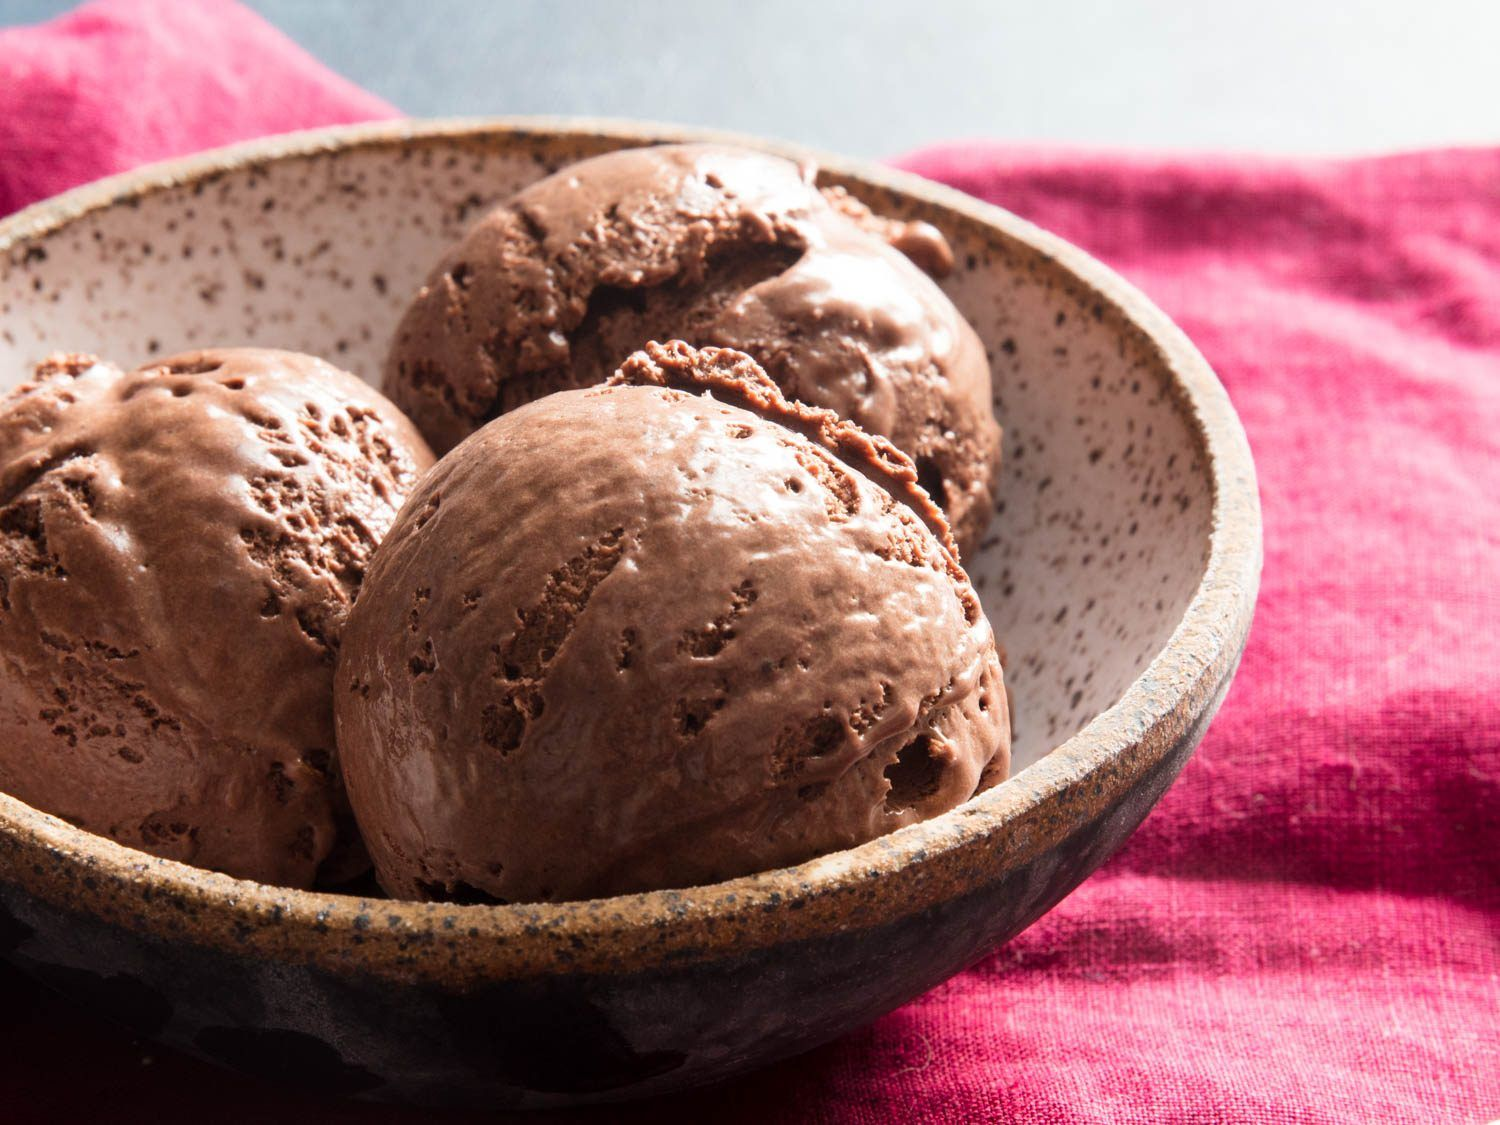 No Churn Chocolate Ice Cream Recipe With Images Chocolate Ice Cream Cream Recipes Chocolate Ice Cream Recipe